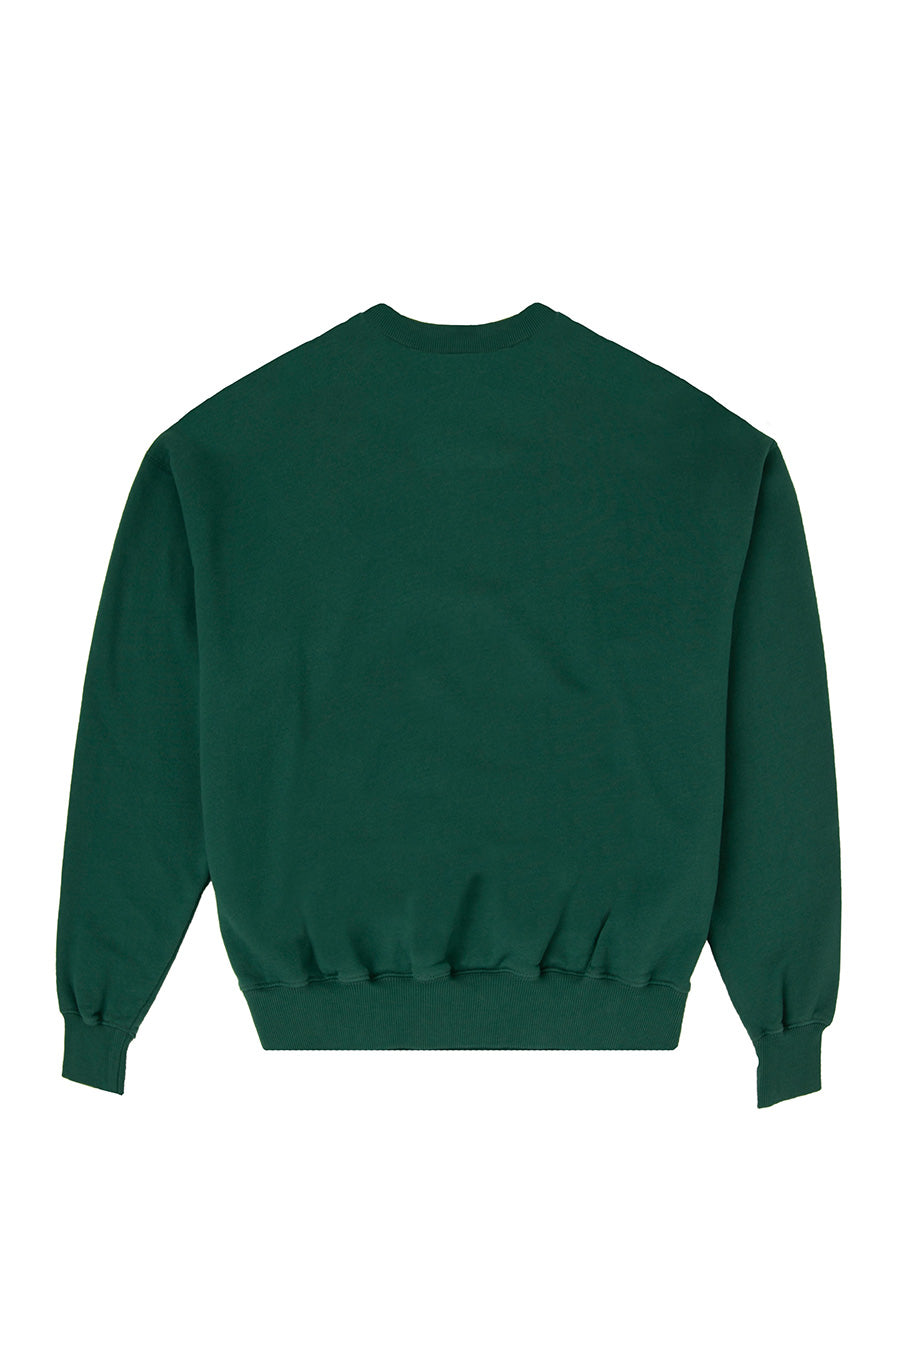 Drôle De Monsieur - Green Classic Crewneck | 1032 SPACE